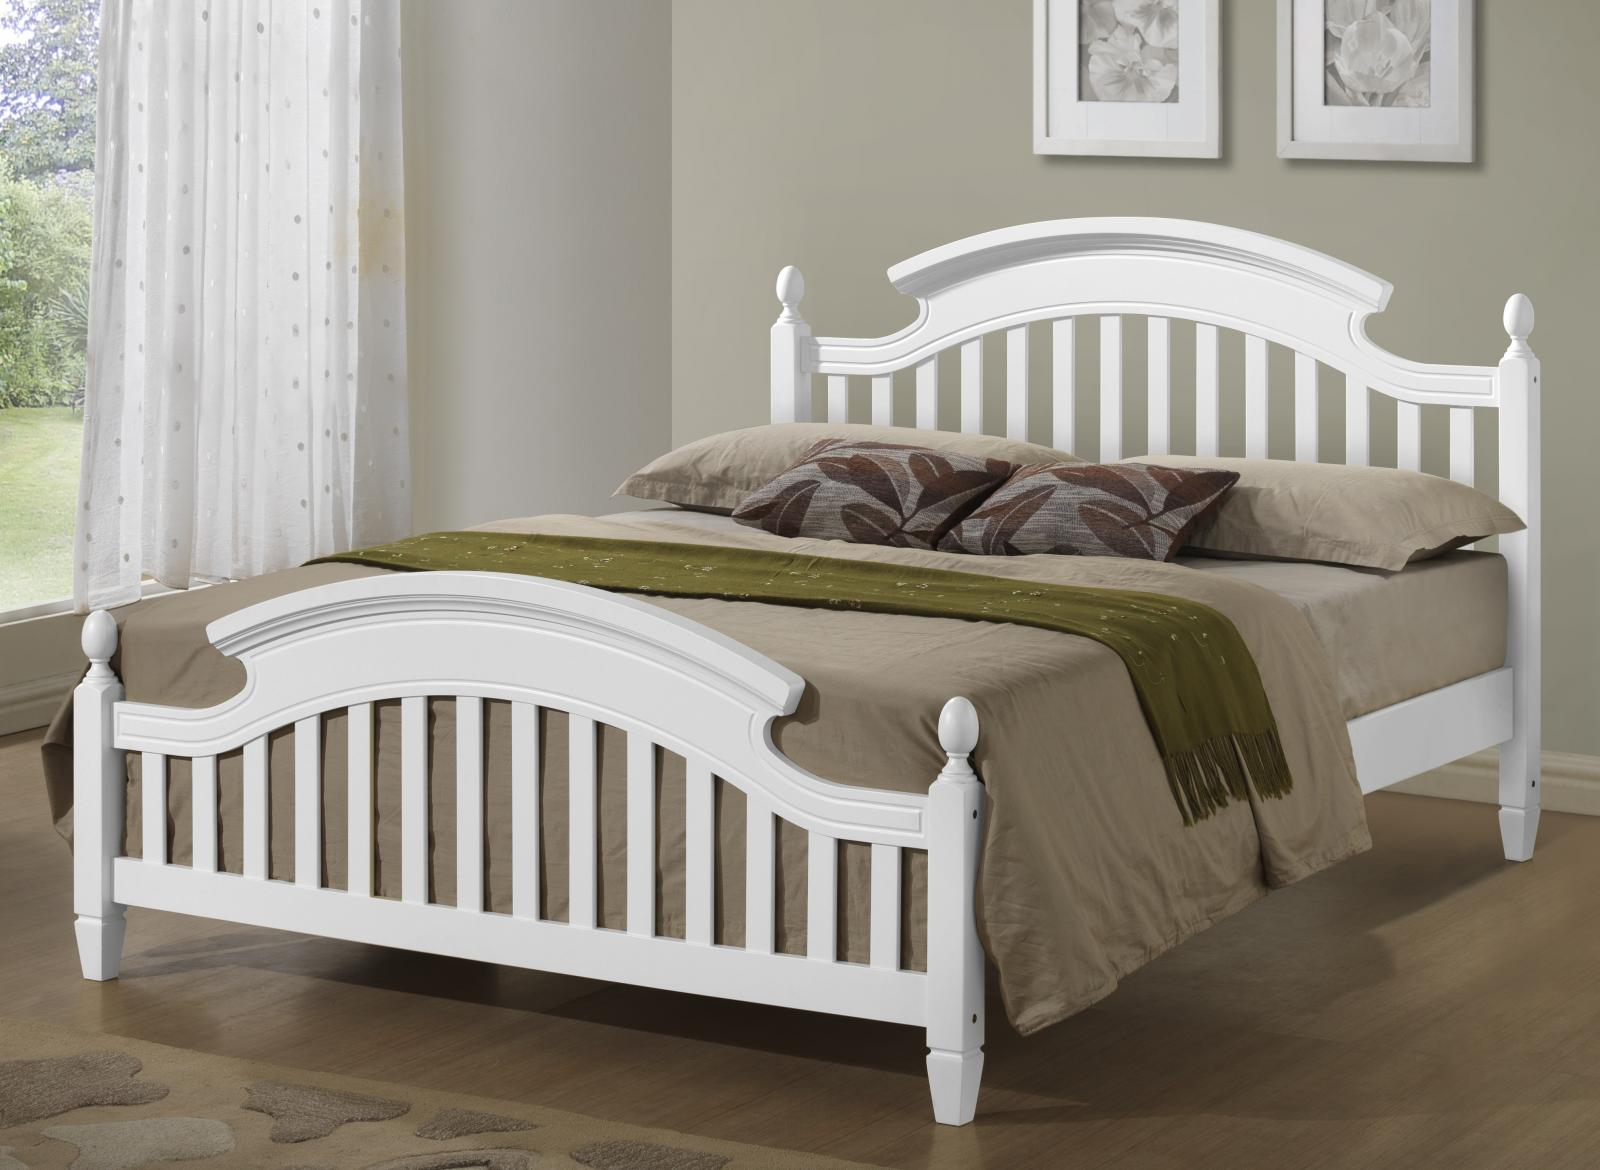 white wooden arched headboard bed frame in 3ft single 4ft6. Black Bedroom Furniture Sets. Home Design Ideas